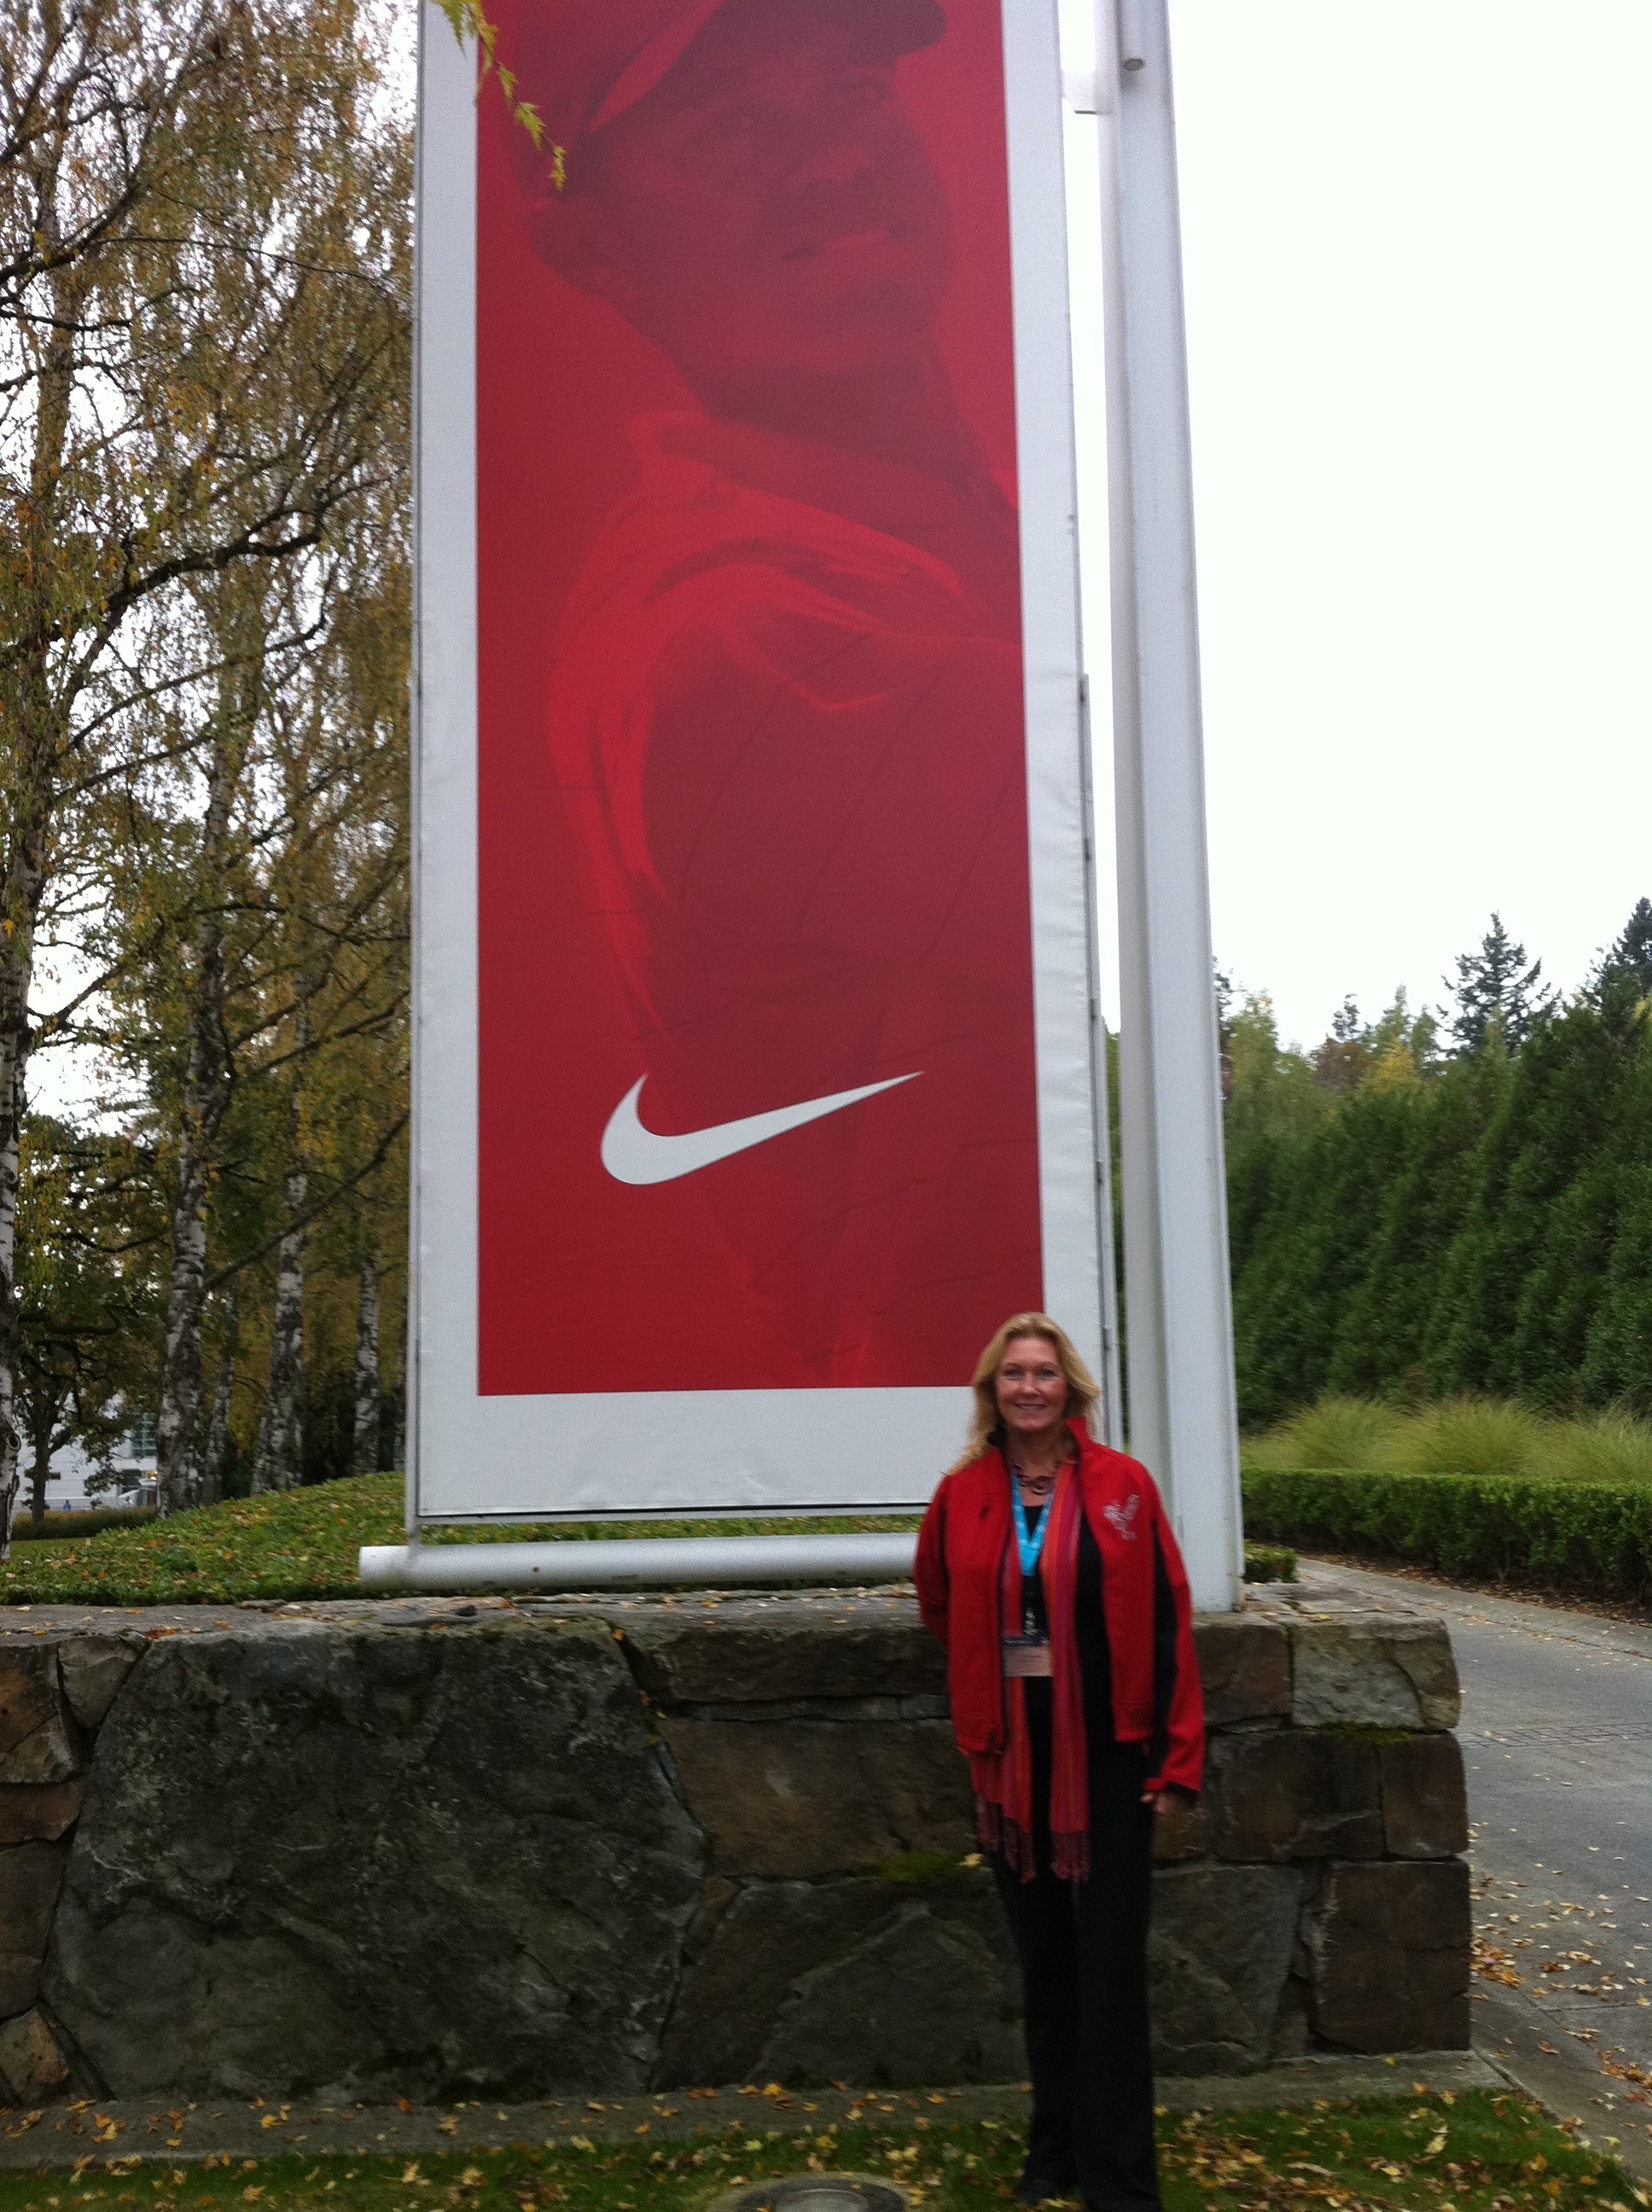 Panucci visiting the Nike headquarters.